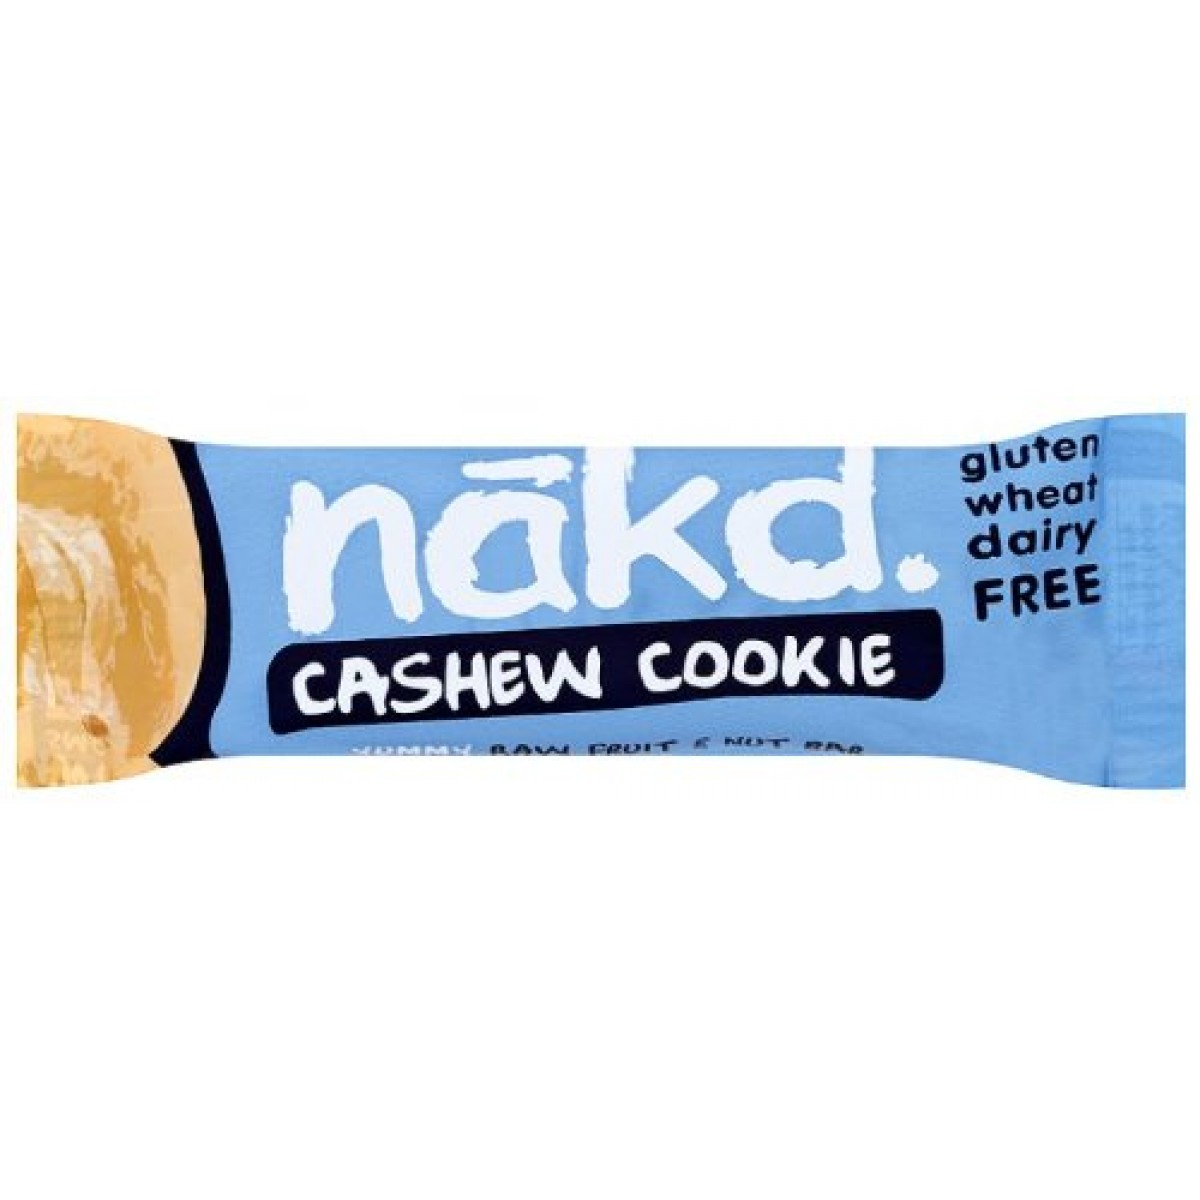 Cashew Cookie Bar